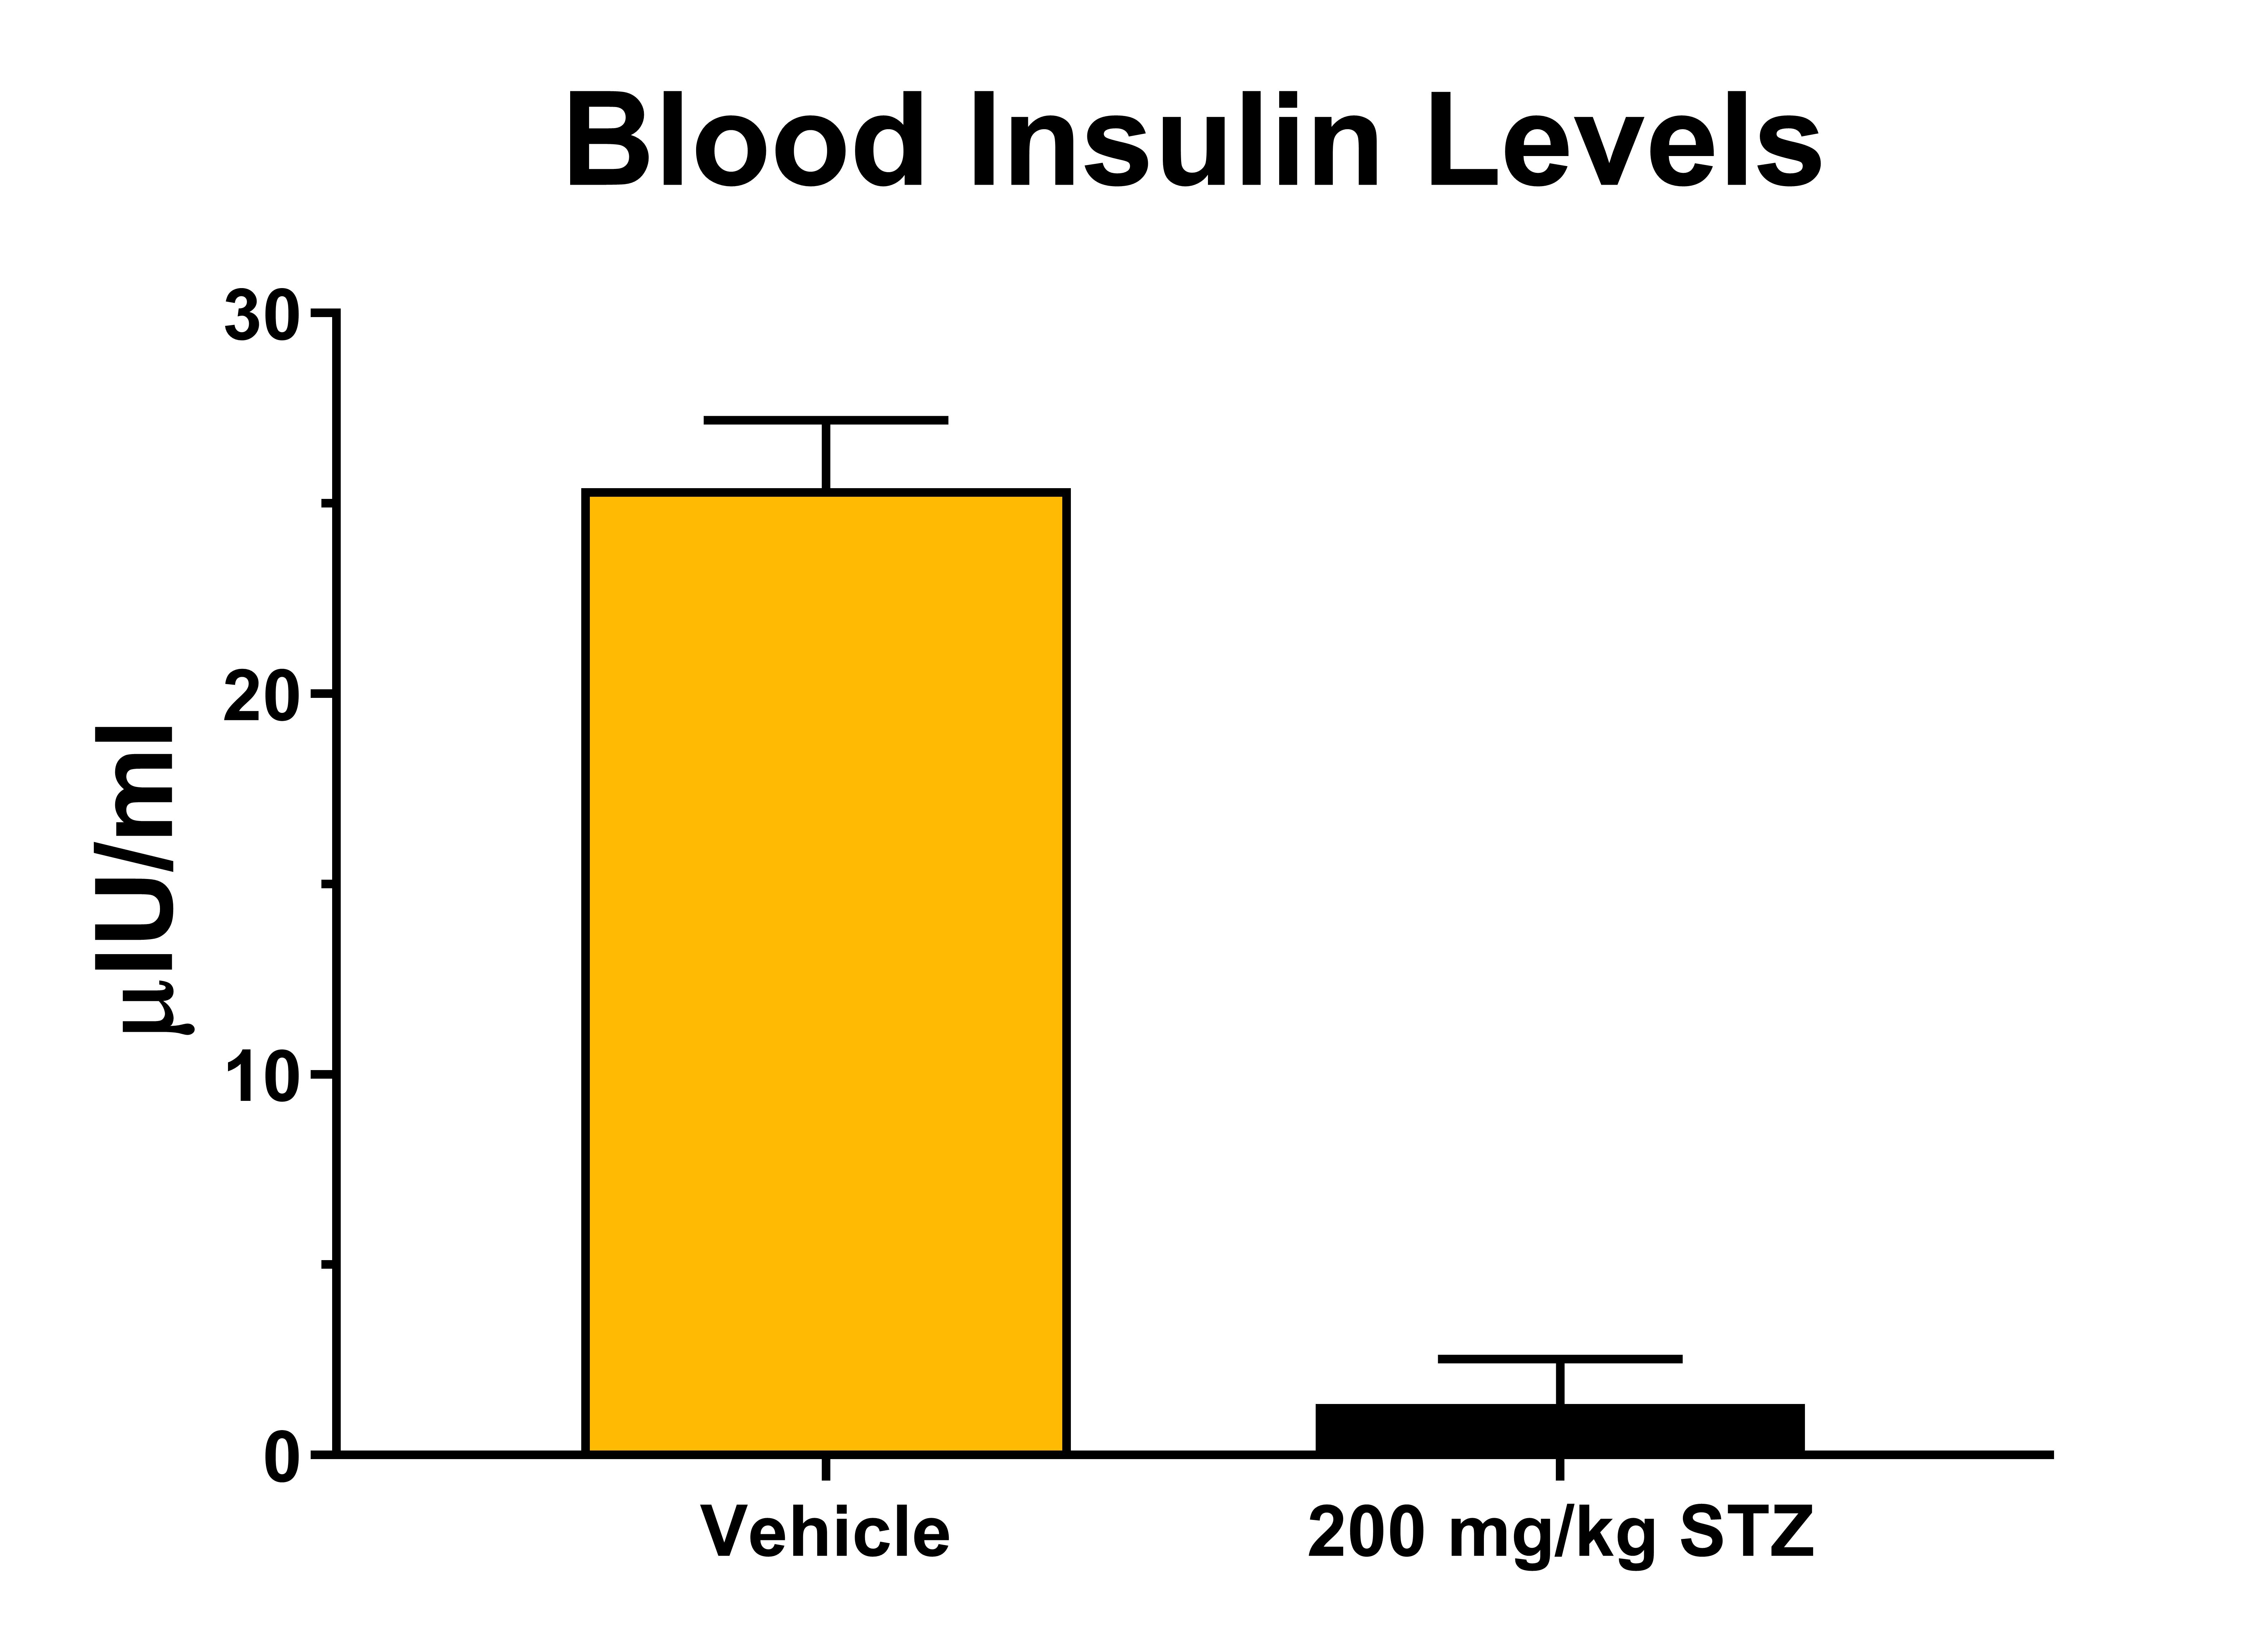 Blood Insulin Levels in C57Bl/6 mice that have been administered STZ